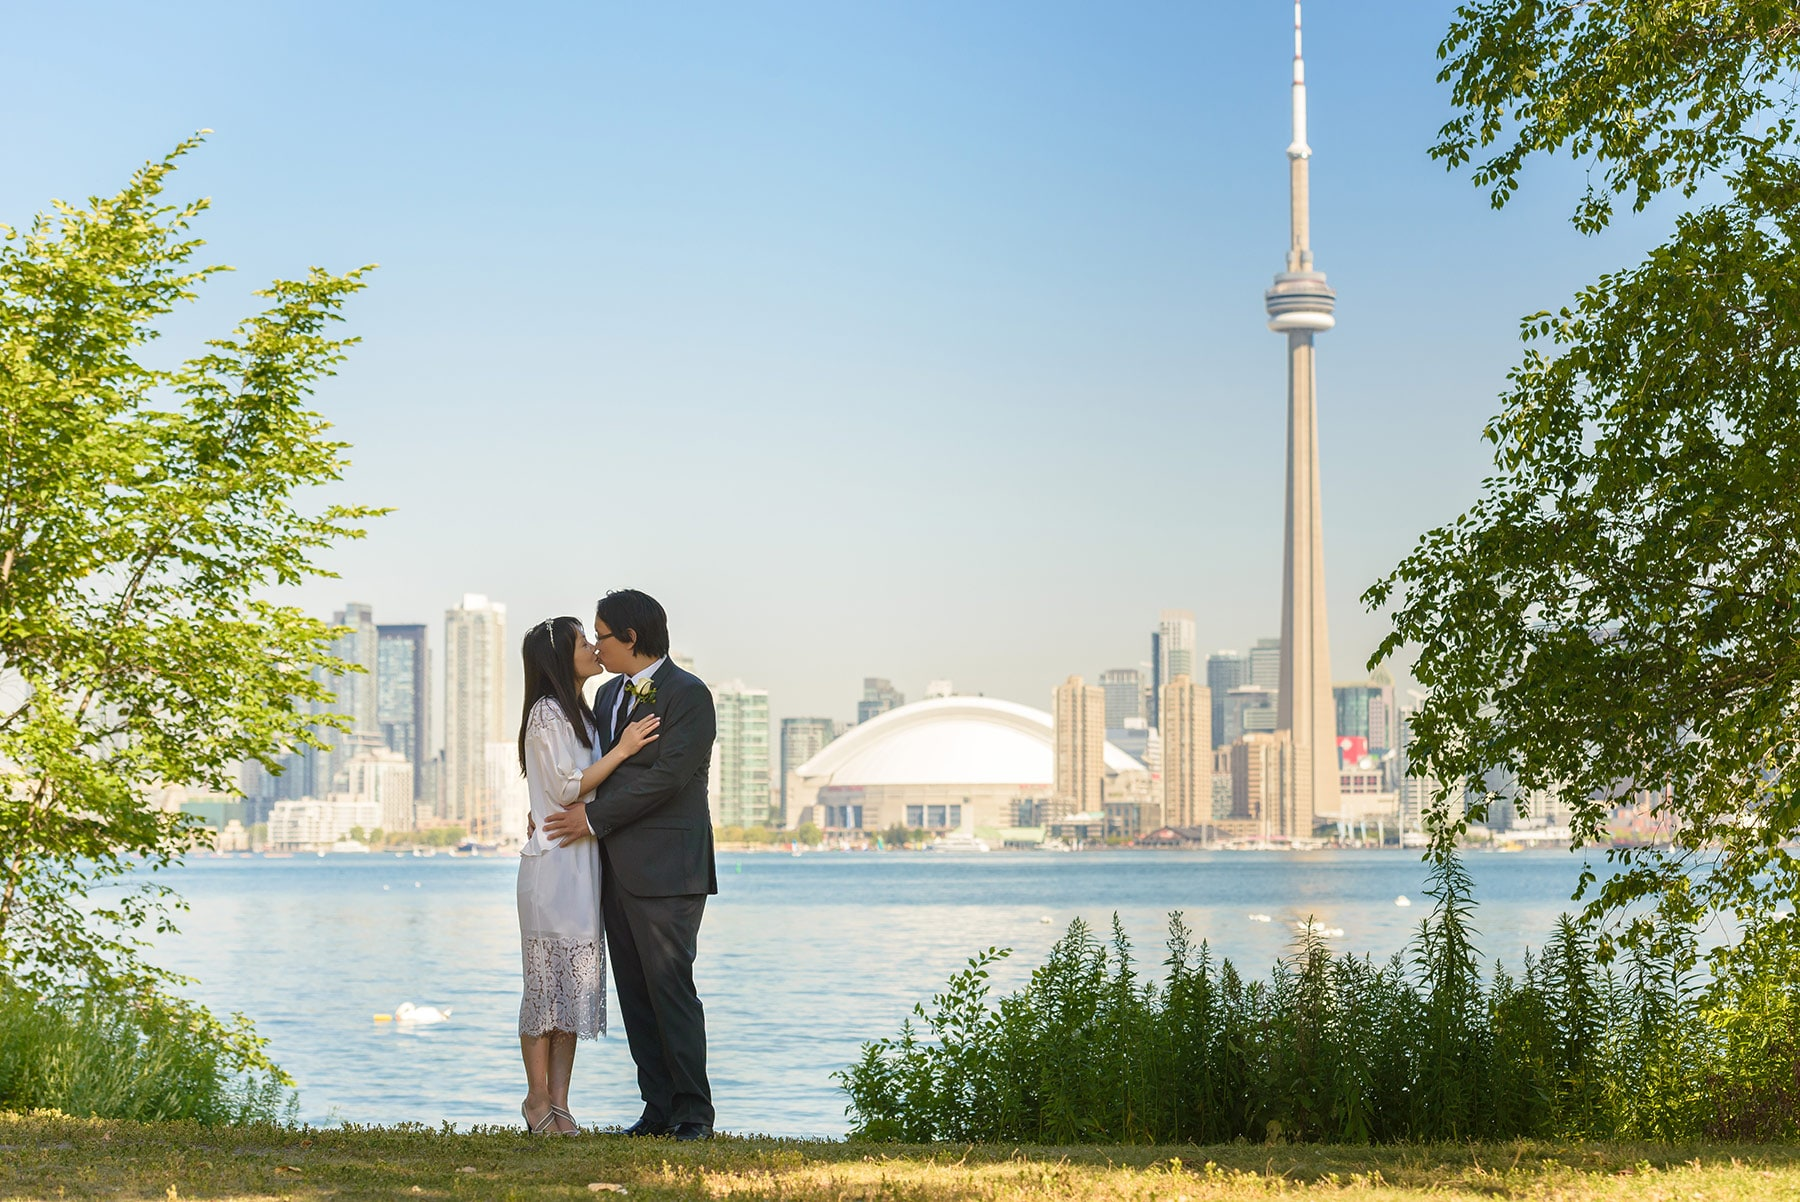 Asian couple wedding photo on Toronto Islands